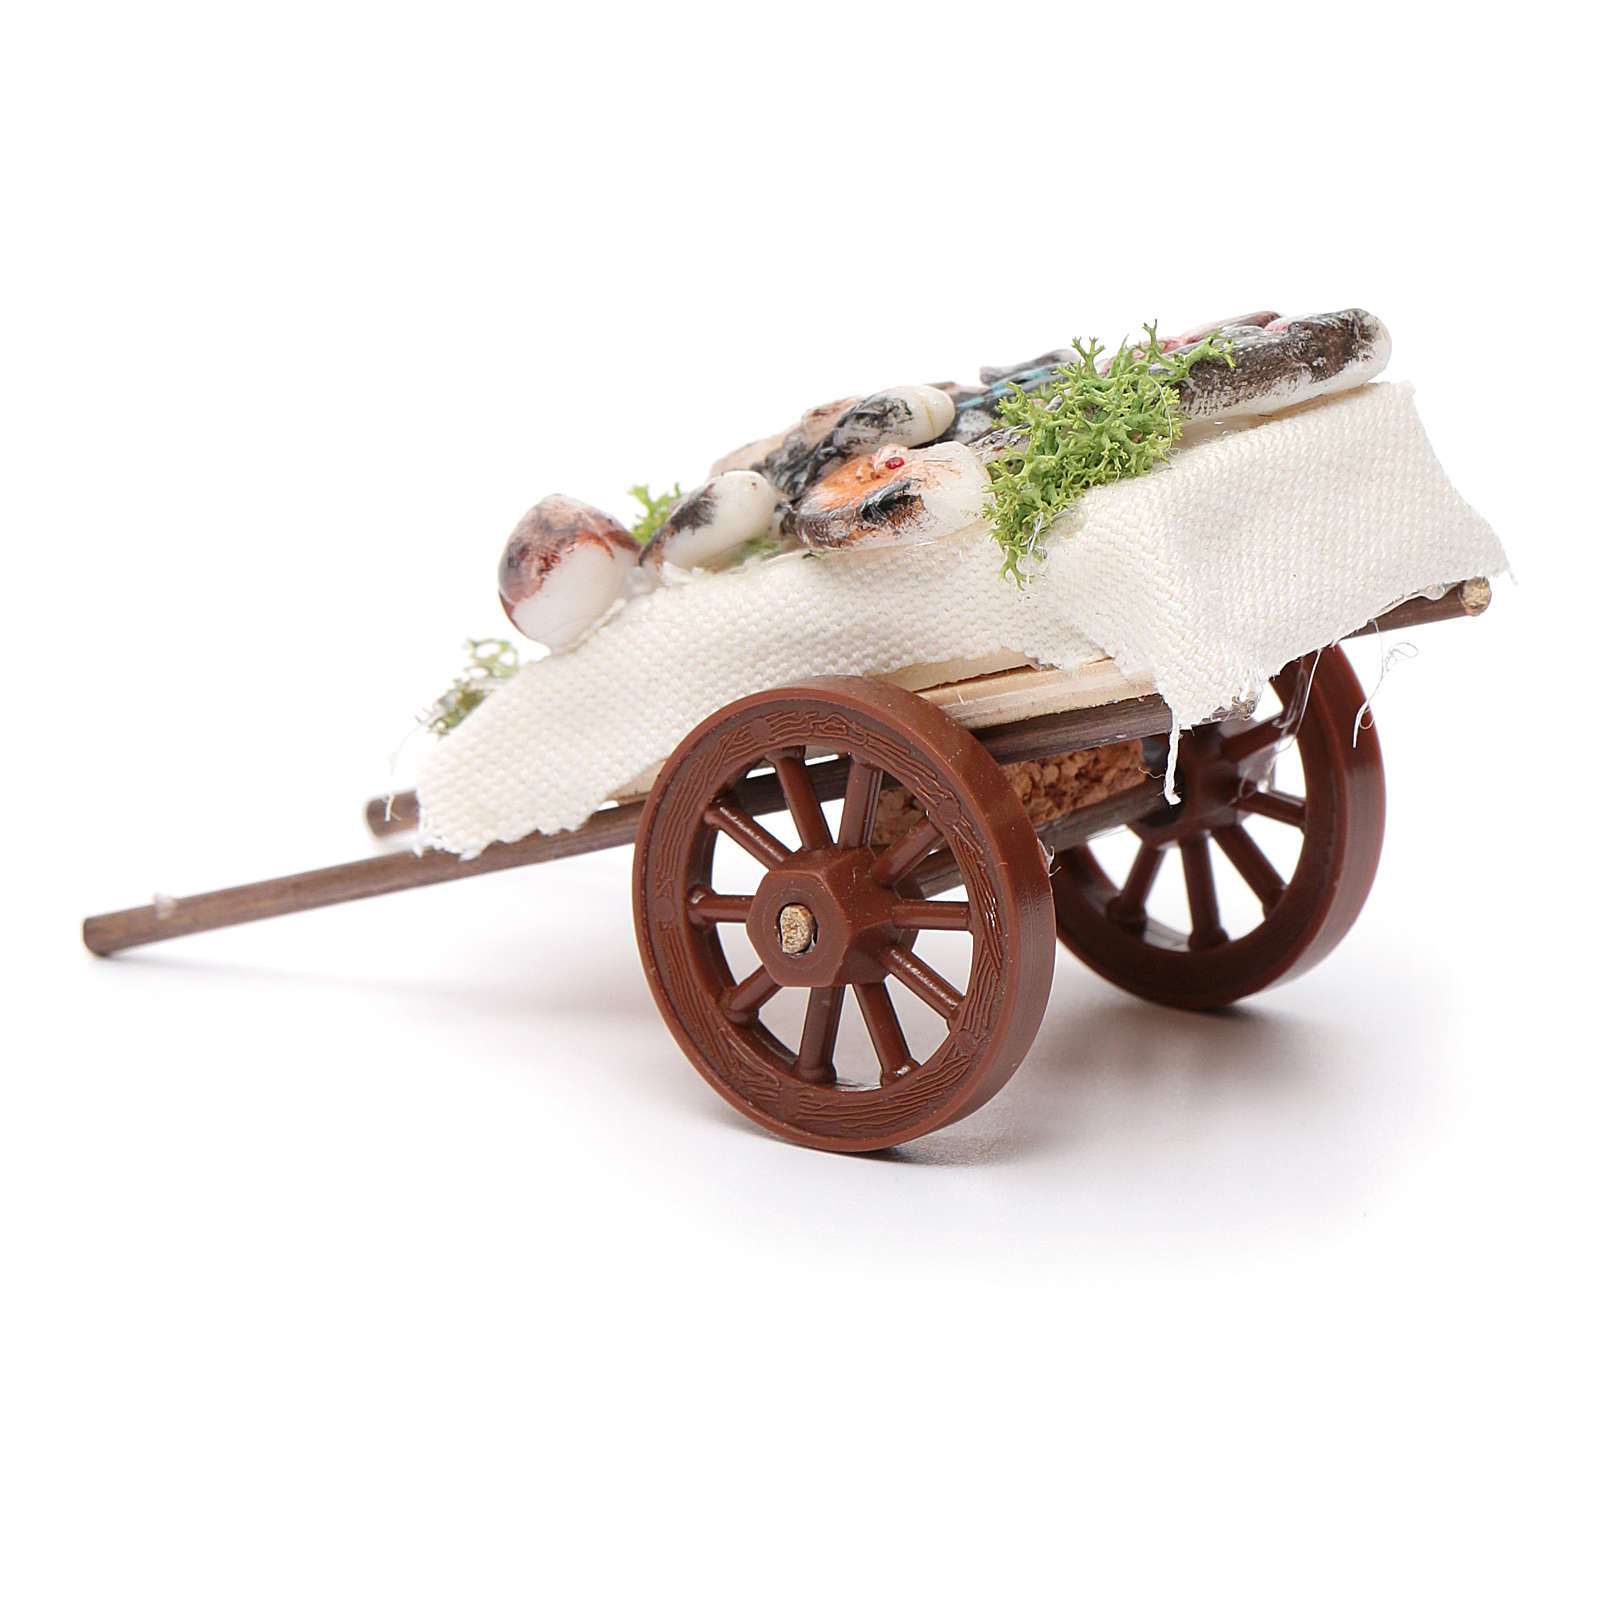 Neapolitan Nativity accessory, fishmonger's cart in wax 5x11x5cm 4